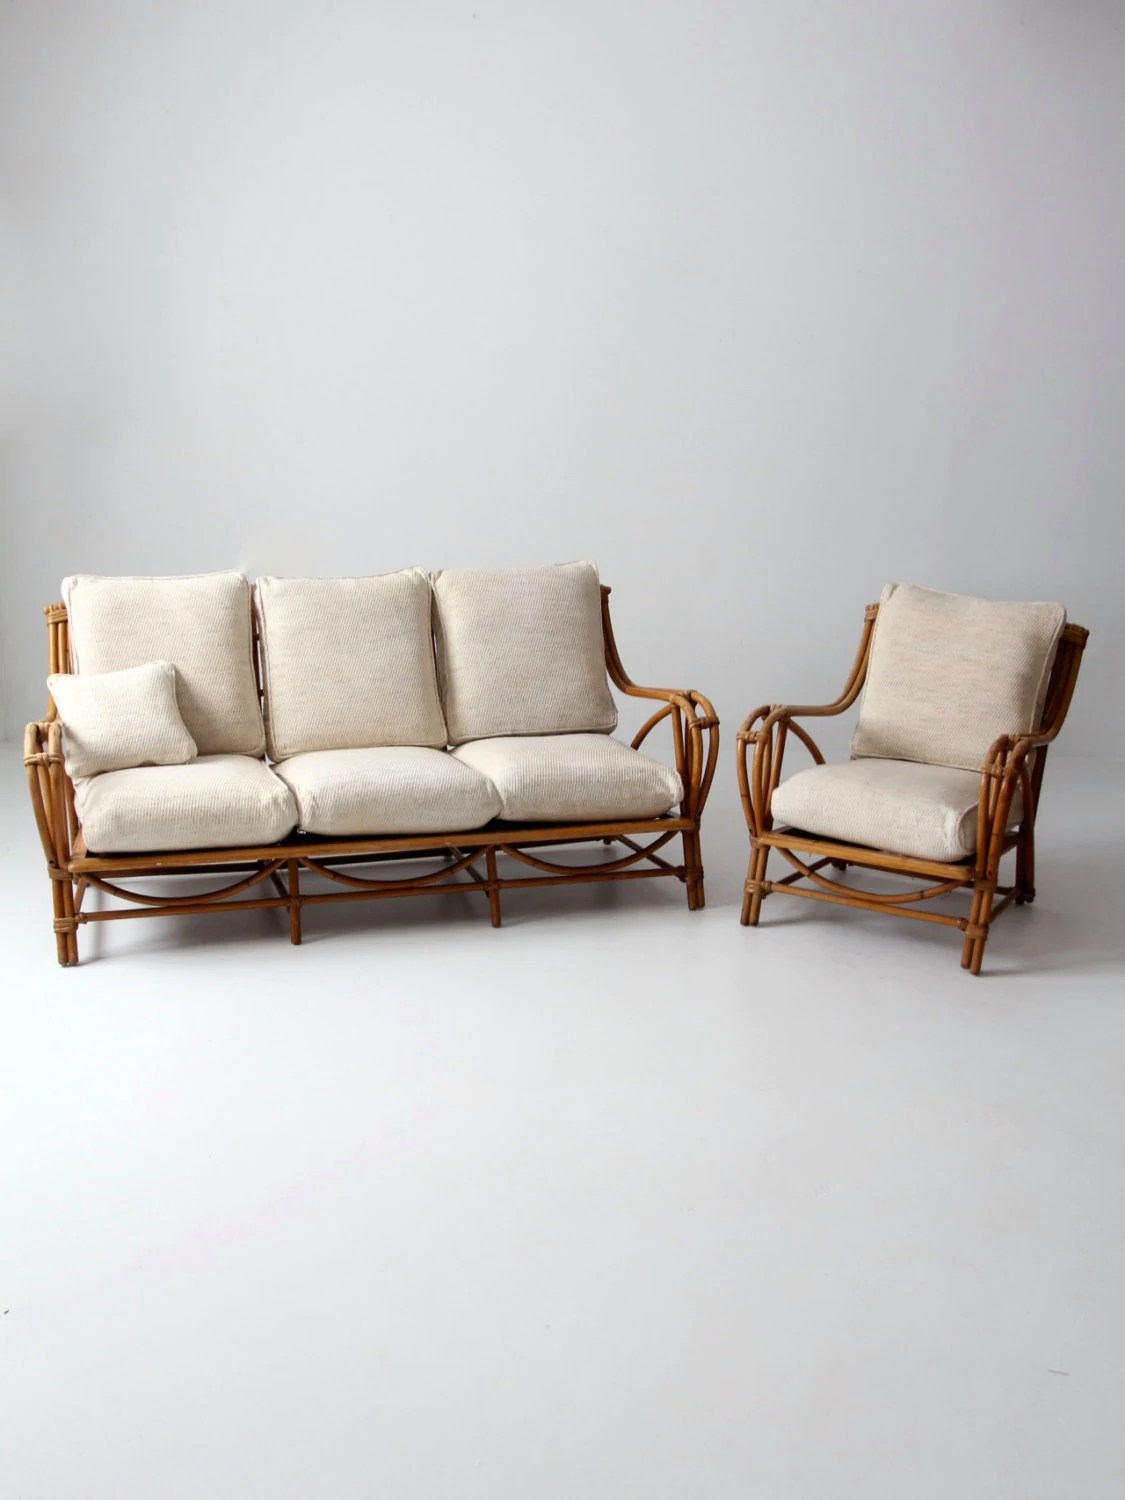 bamboo couch and chairs used wooden for sale vintage rattan furniture set chair with